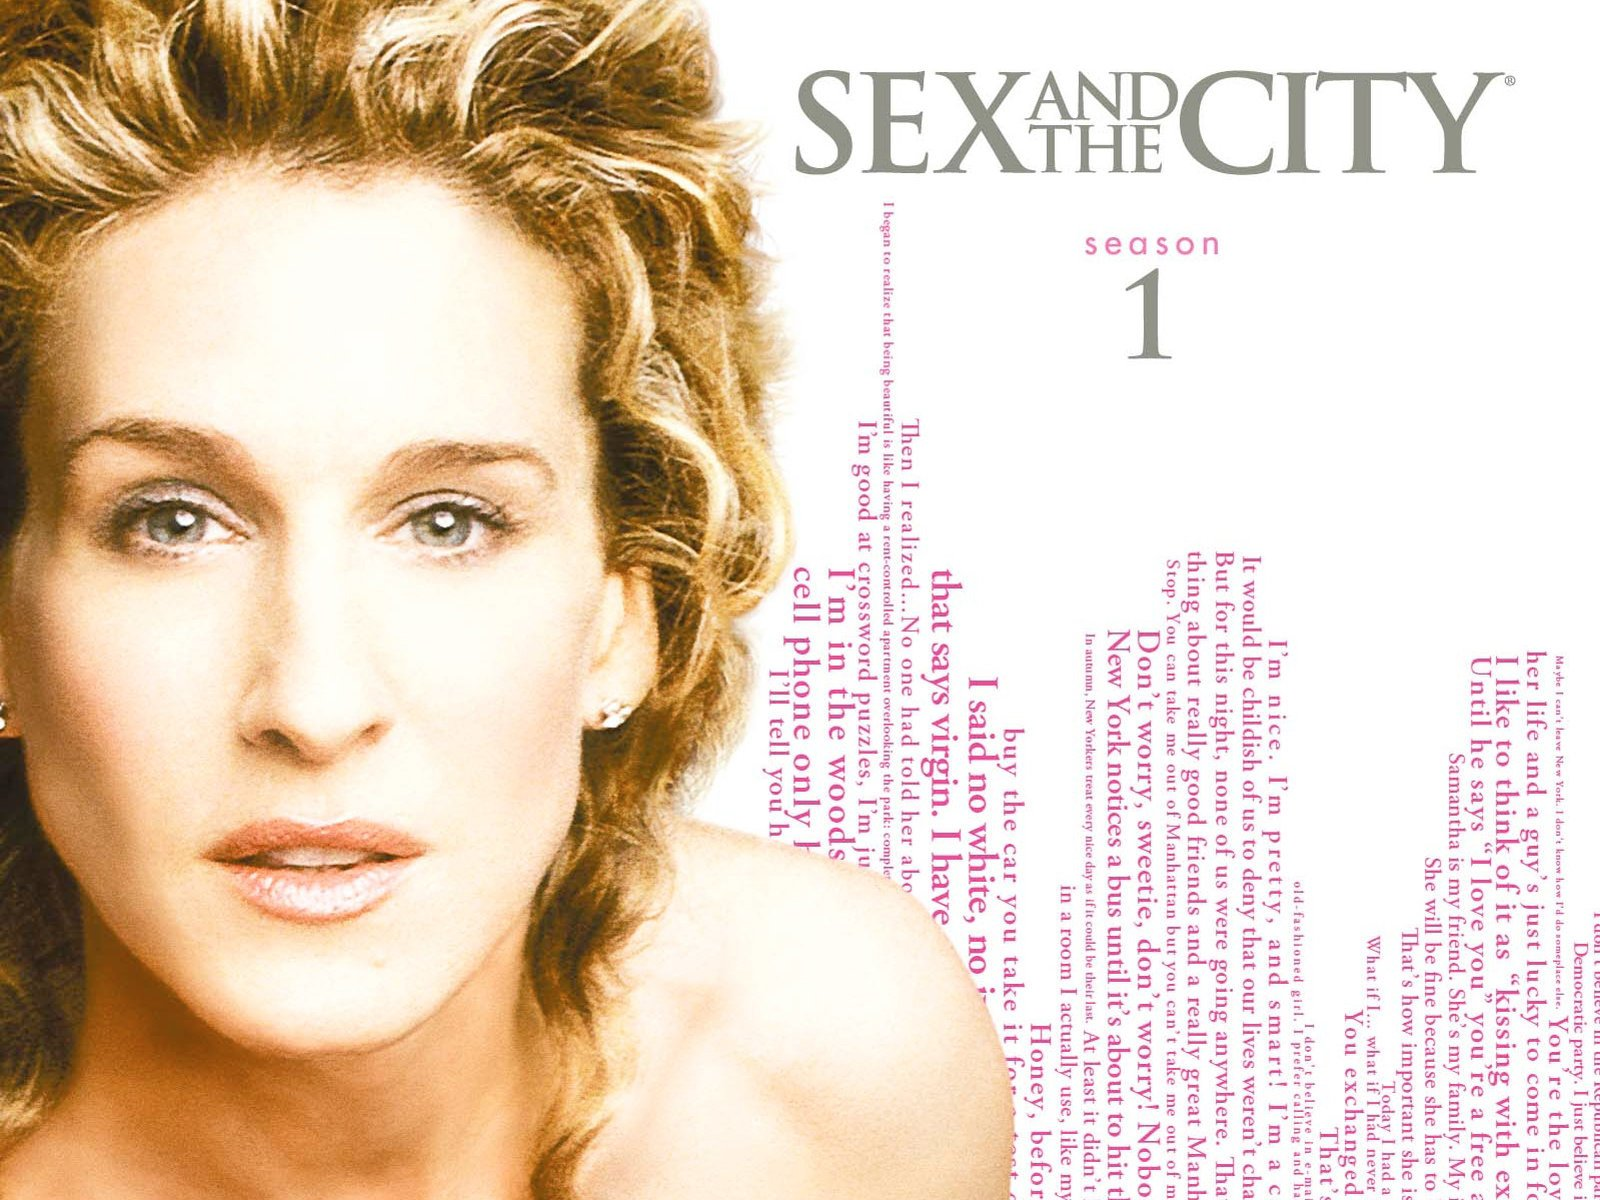 Amazon.de: Sex and the City [OV]: Season 1 ansehen | Prime Video